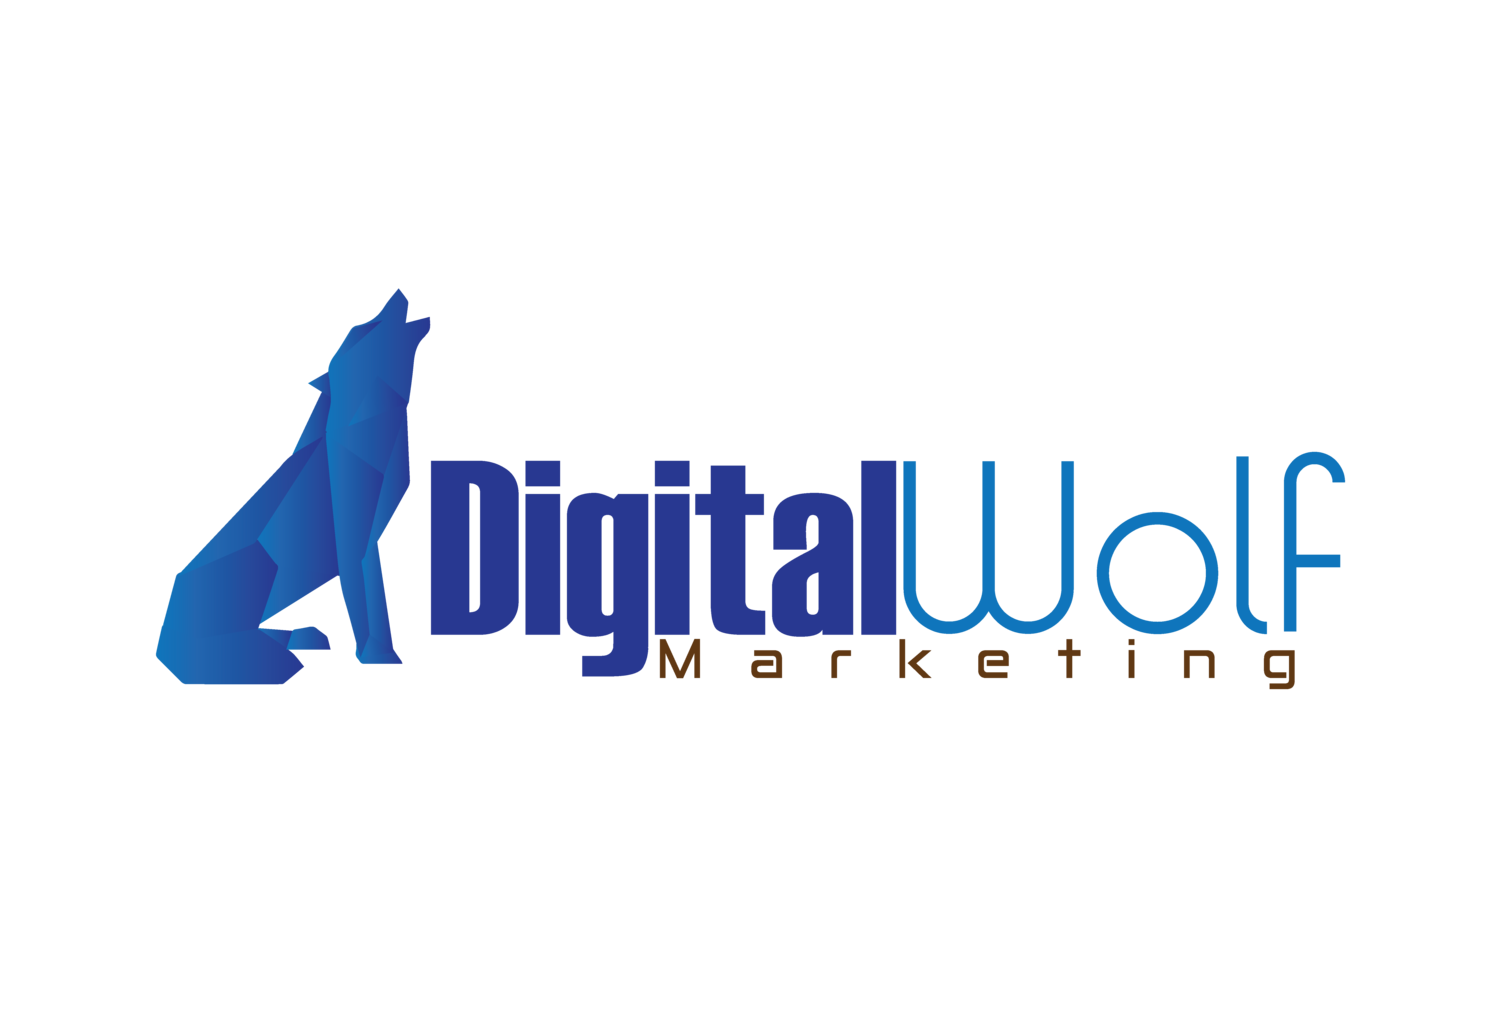 DigitalWolf Marketing